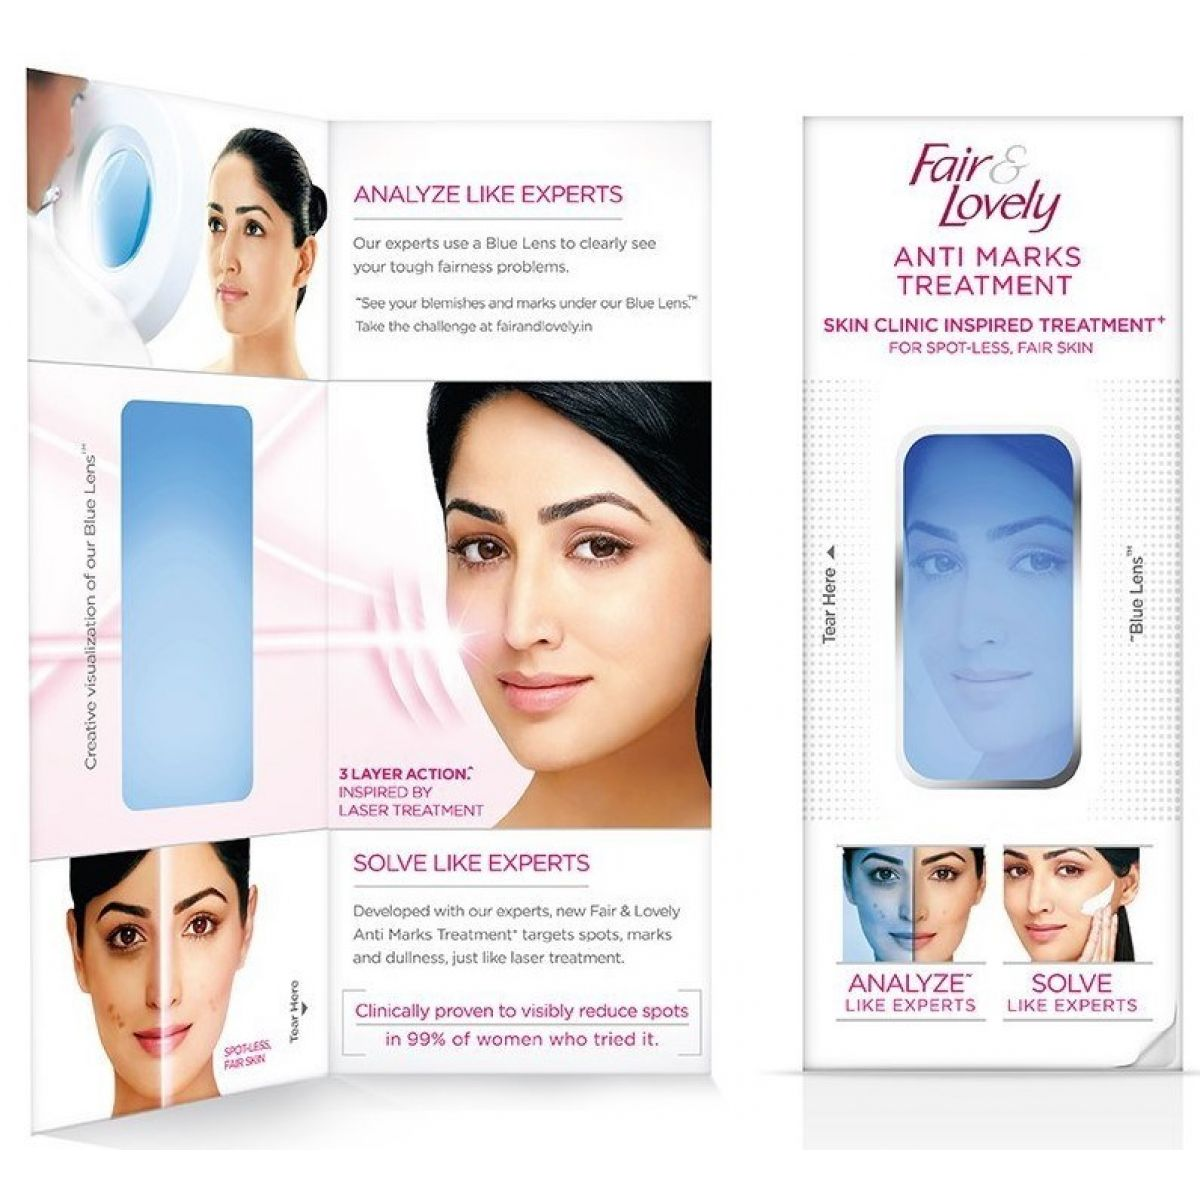 Fair & Lovely Anti Marks Treatment (Anti-Marks-Behandlung Gesichtscreme mit Hautaufhellung)